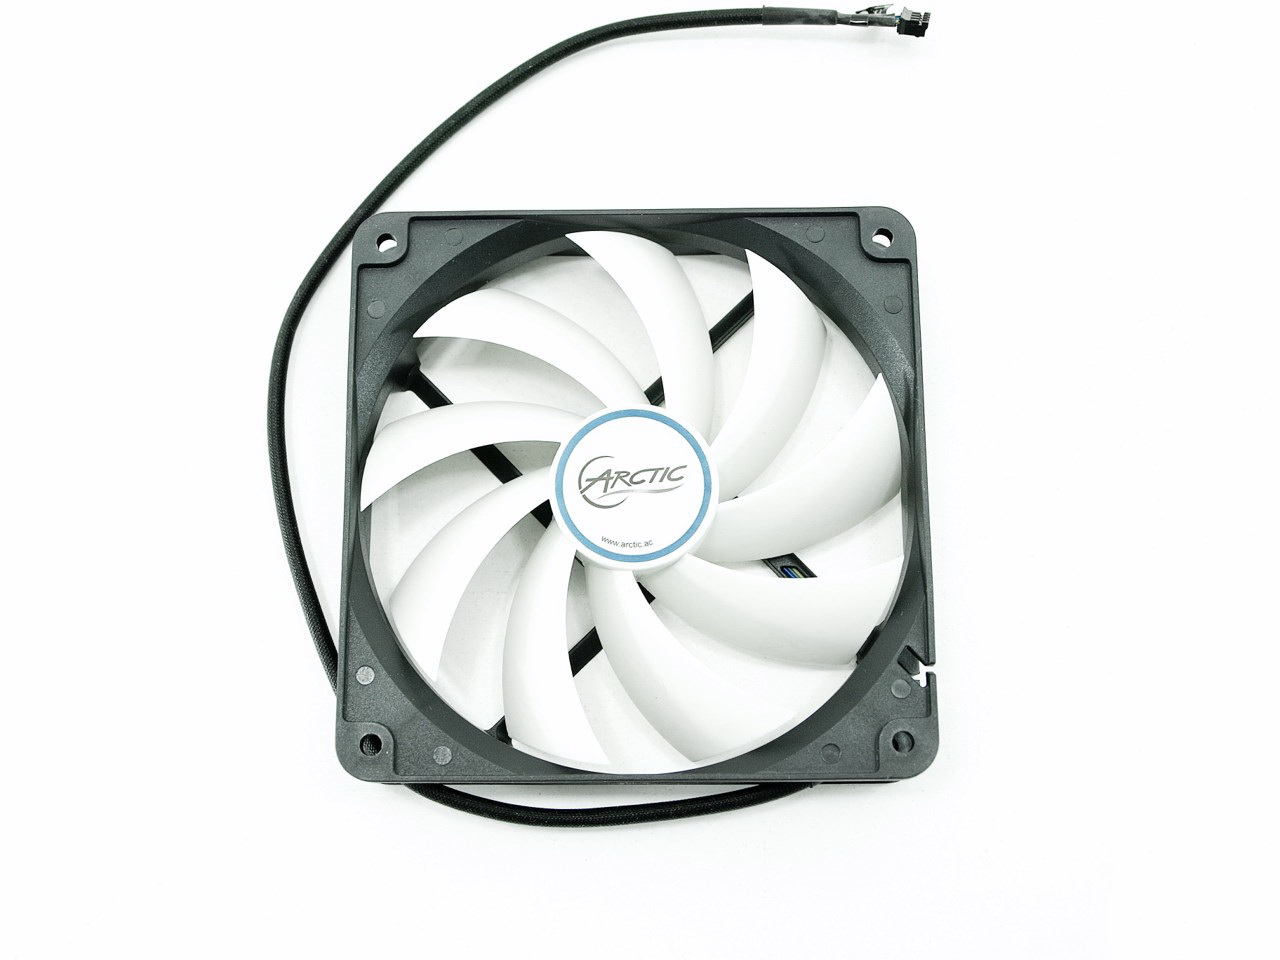 ARCTIC Accelero Hybrid II-120 Air/Liquid Cooler Review